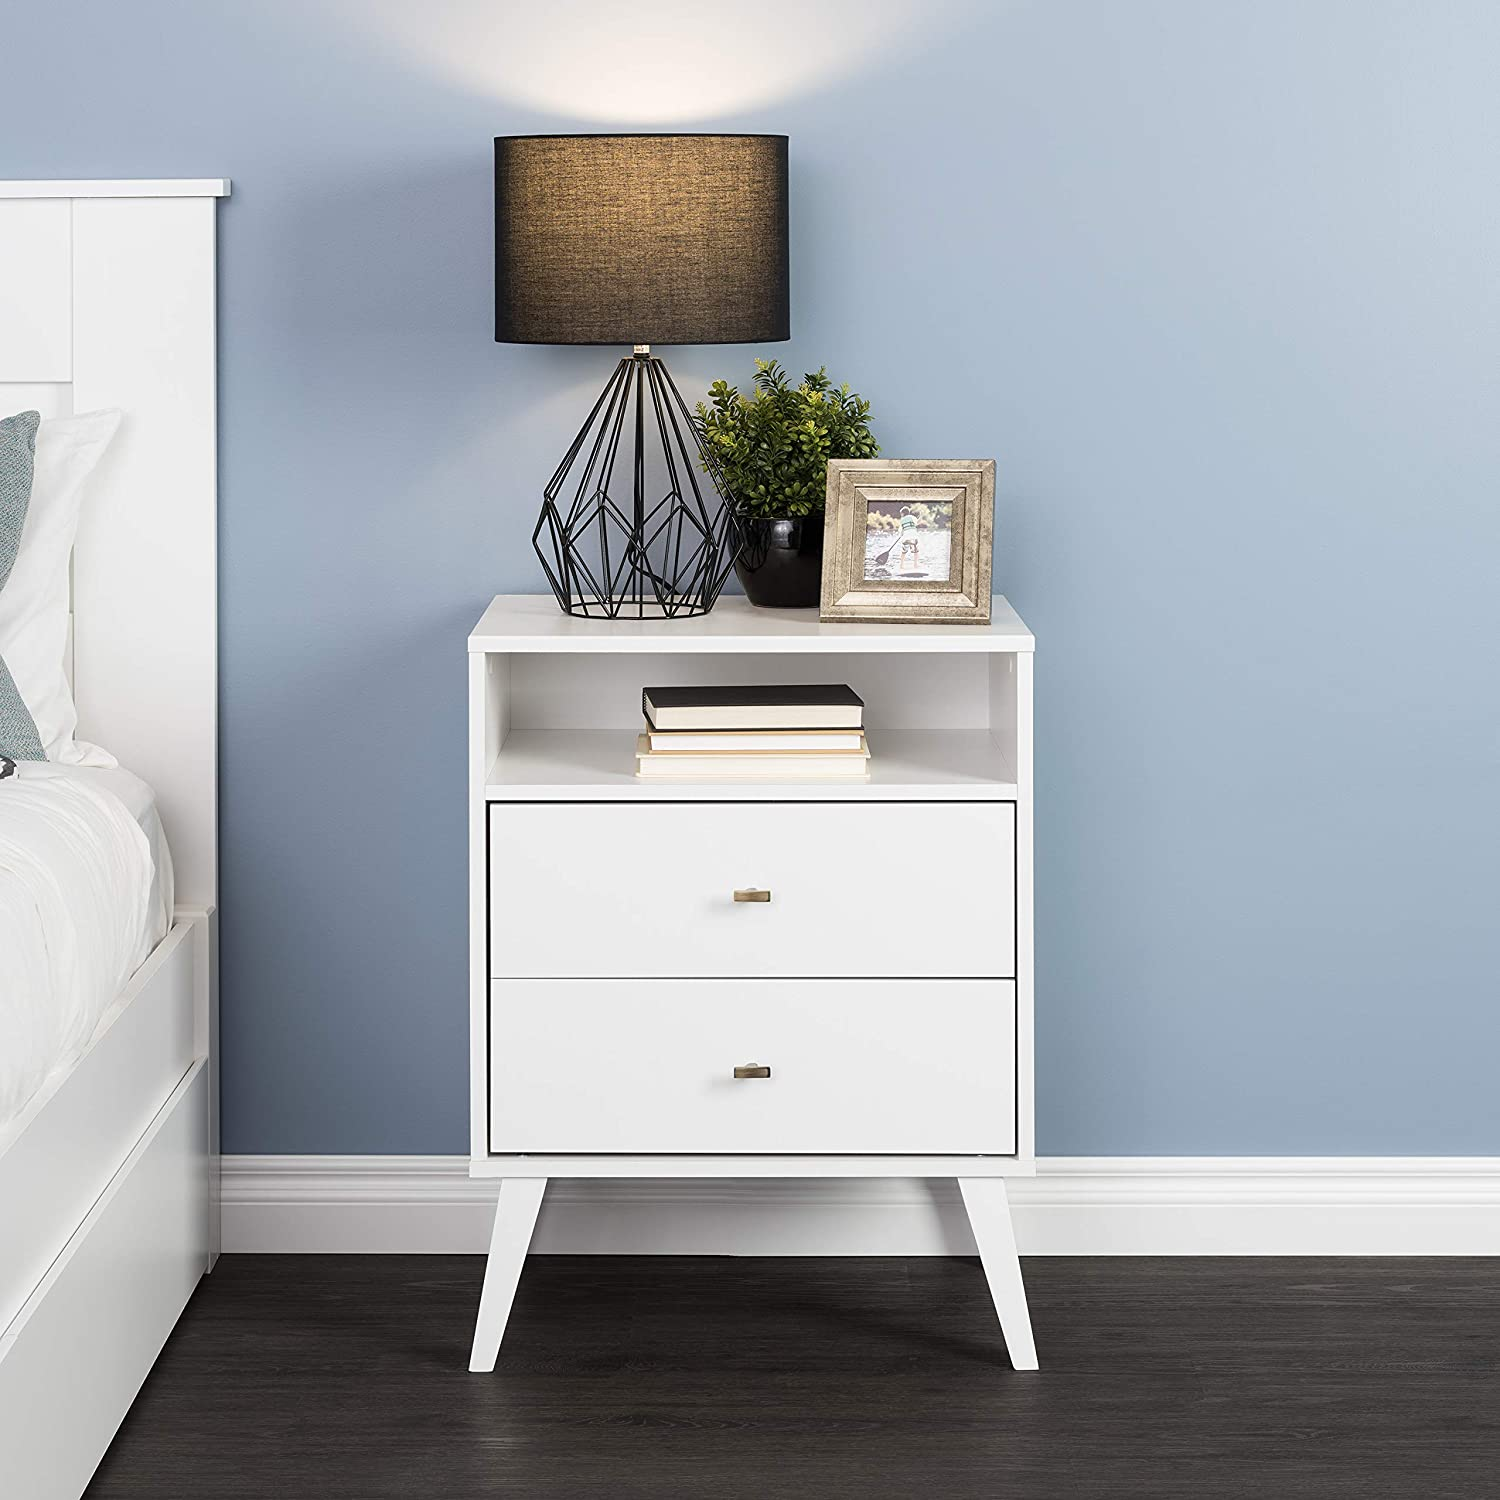 Amazon Com Prepac Milo Mid Century Modern Nightstand 2 Drawer With Open Shelf White Furniture Decor